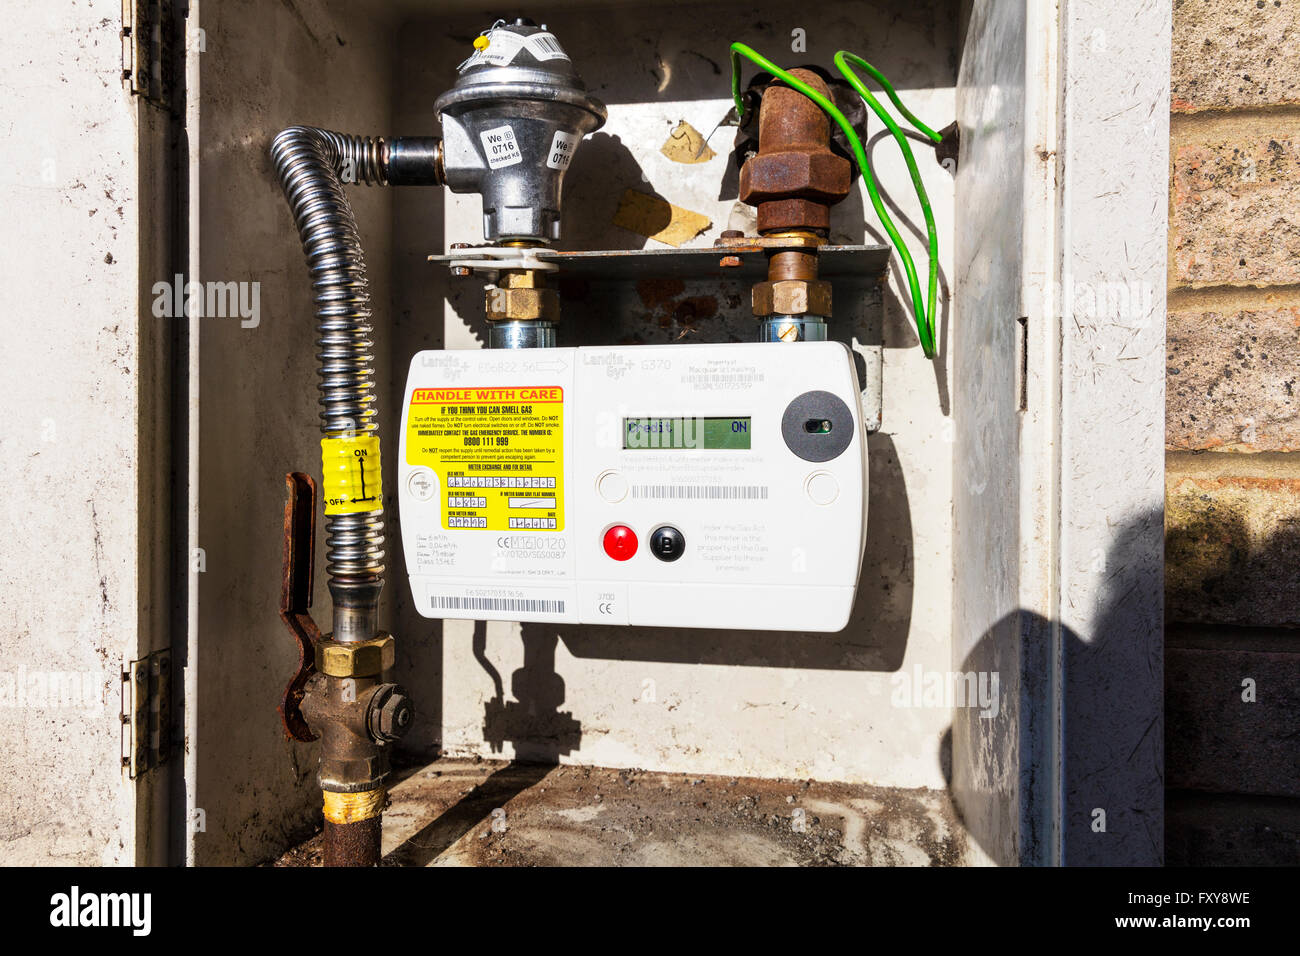 British gas smart meter monitoring usage home technology UK meters metering real time usage budget budgeting charge Stock Photo